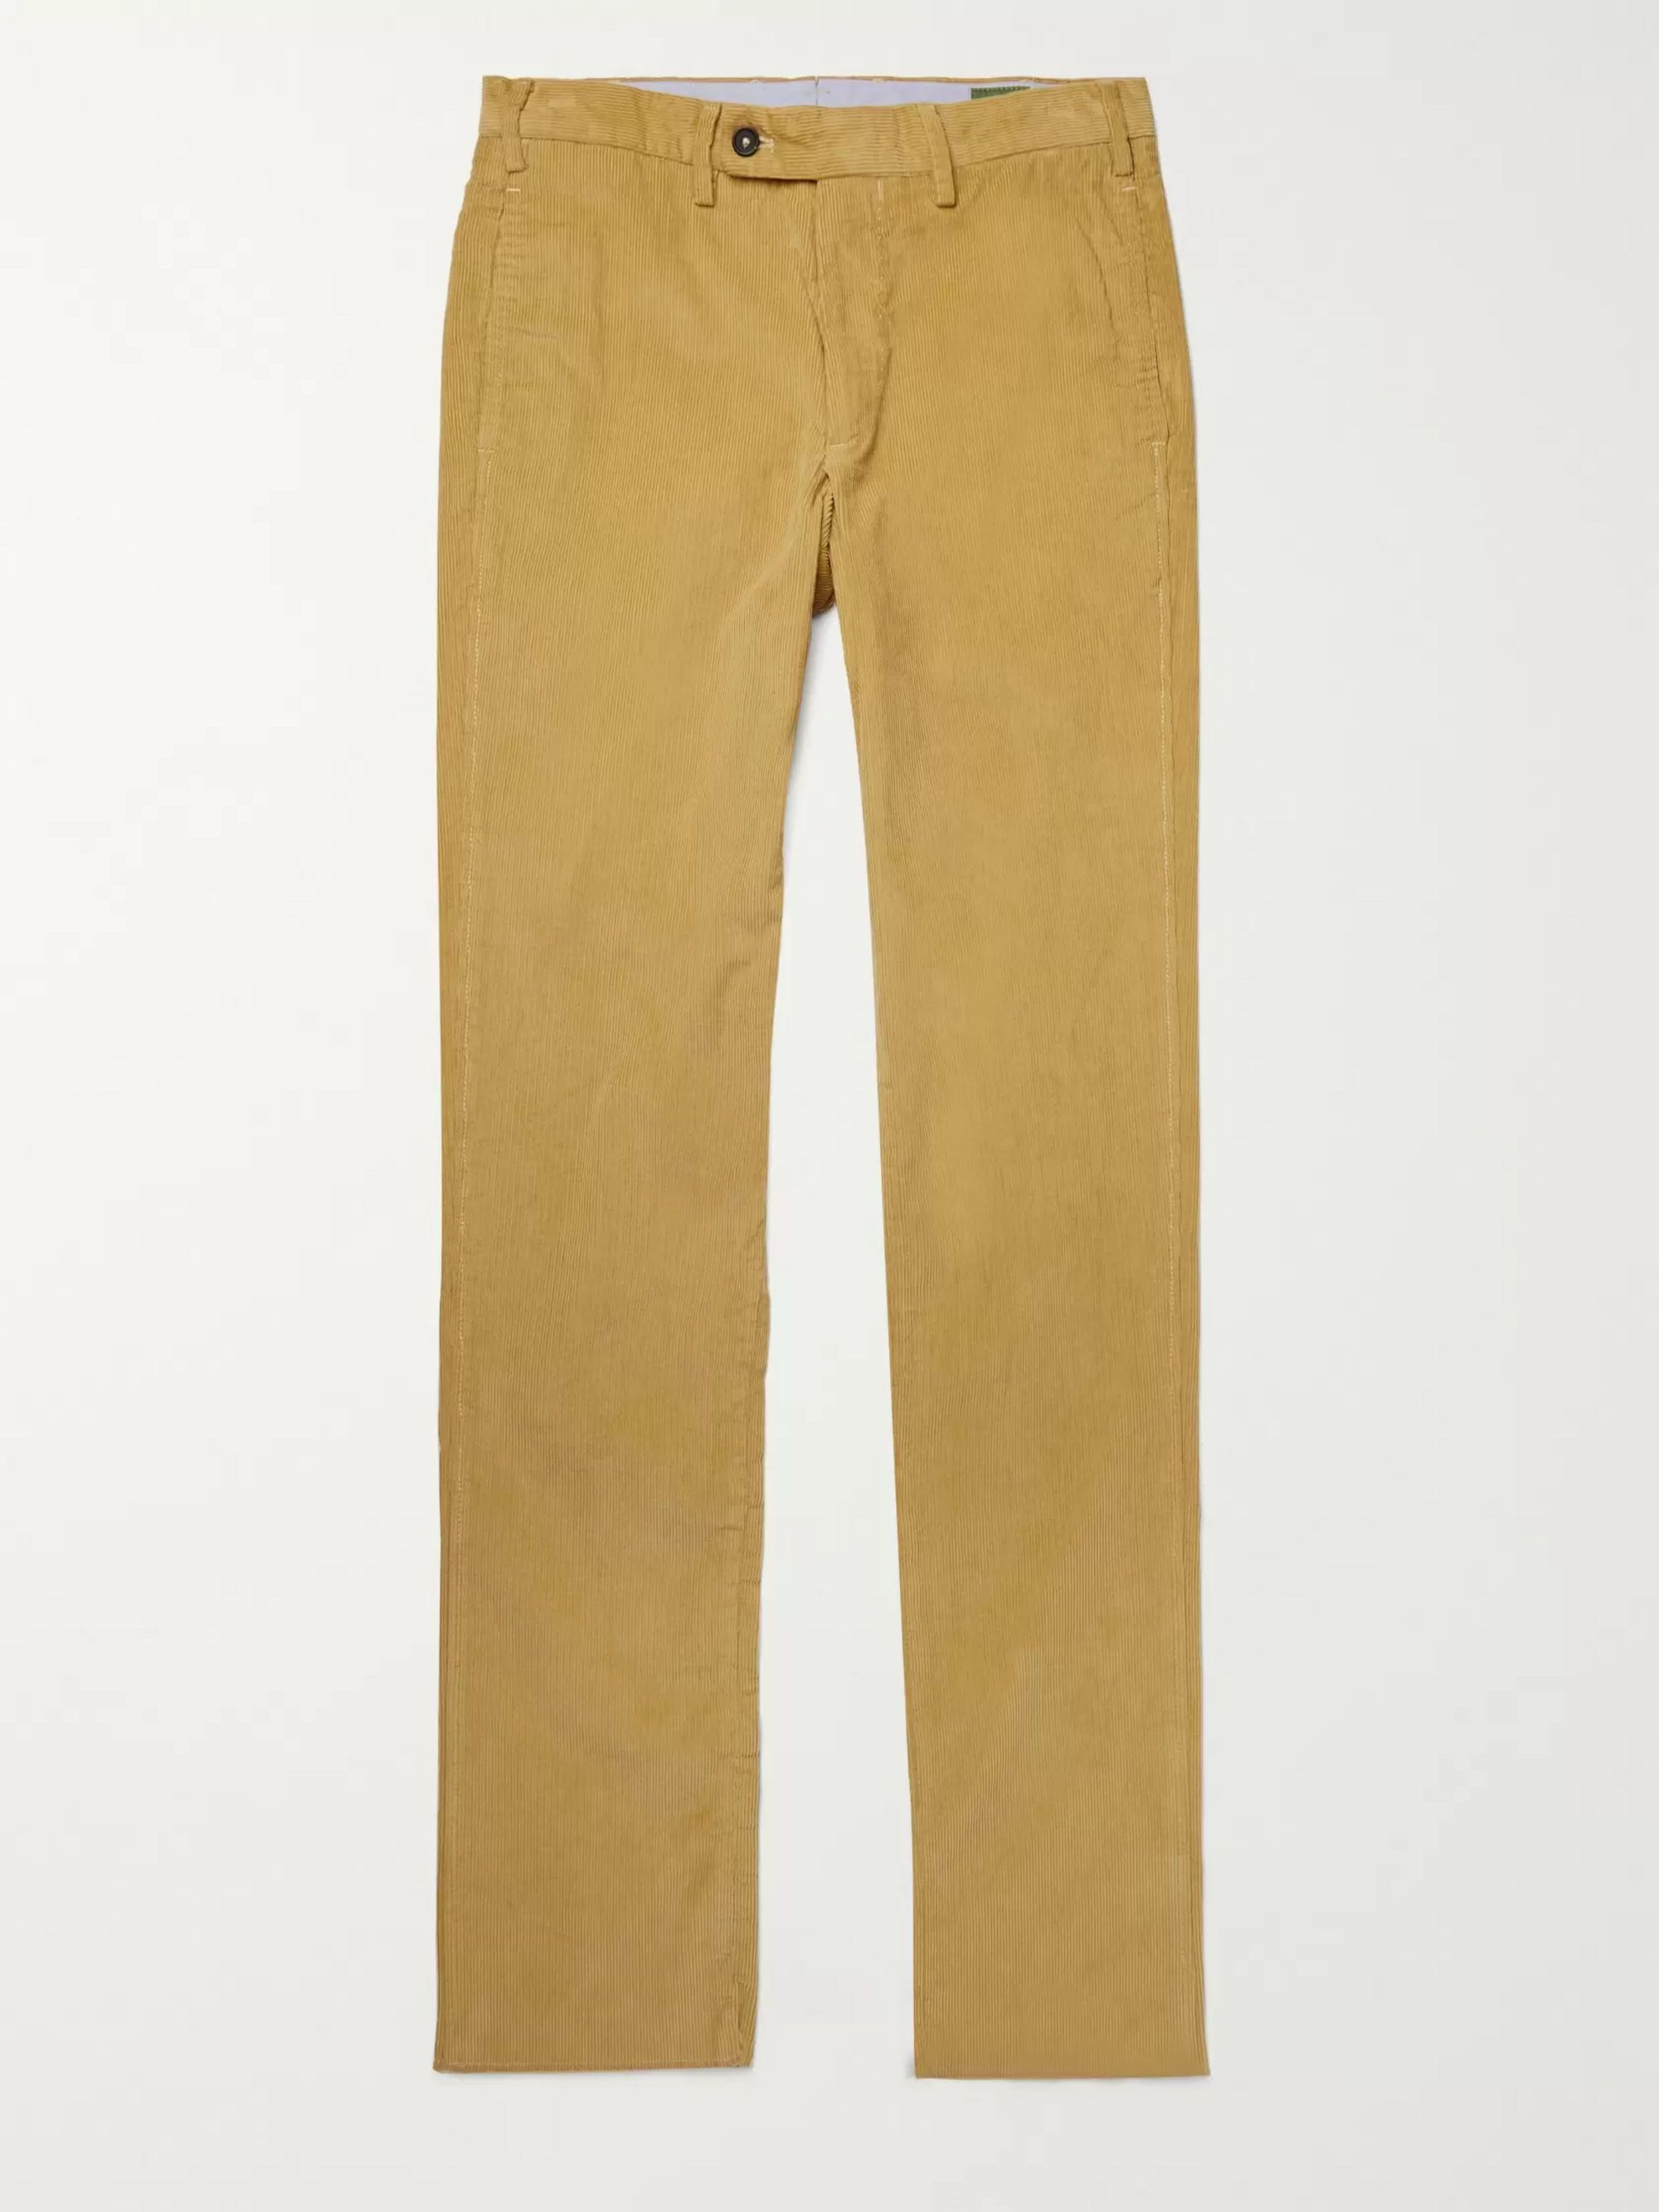 Sid Mashburn Slim-Fit Cotton-Corduroy Trousers